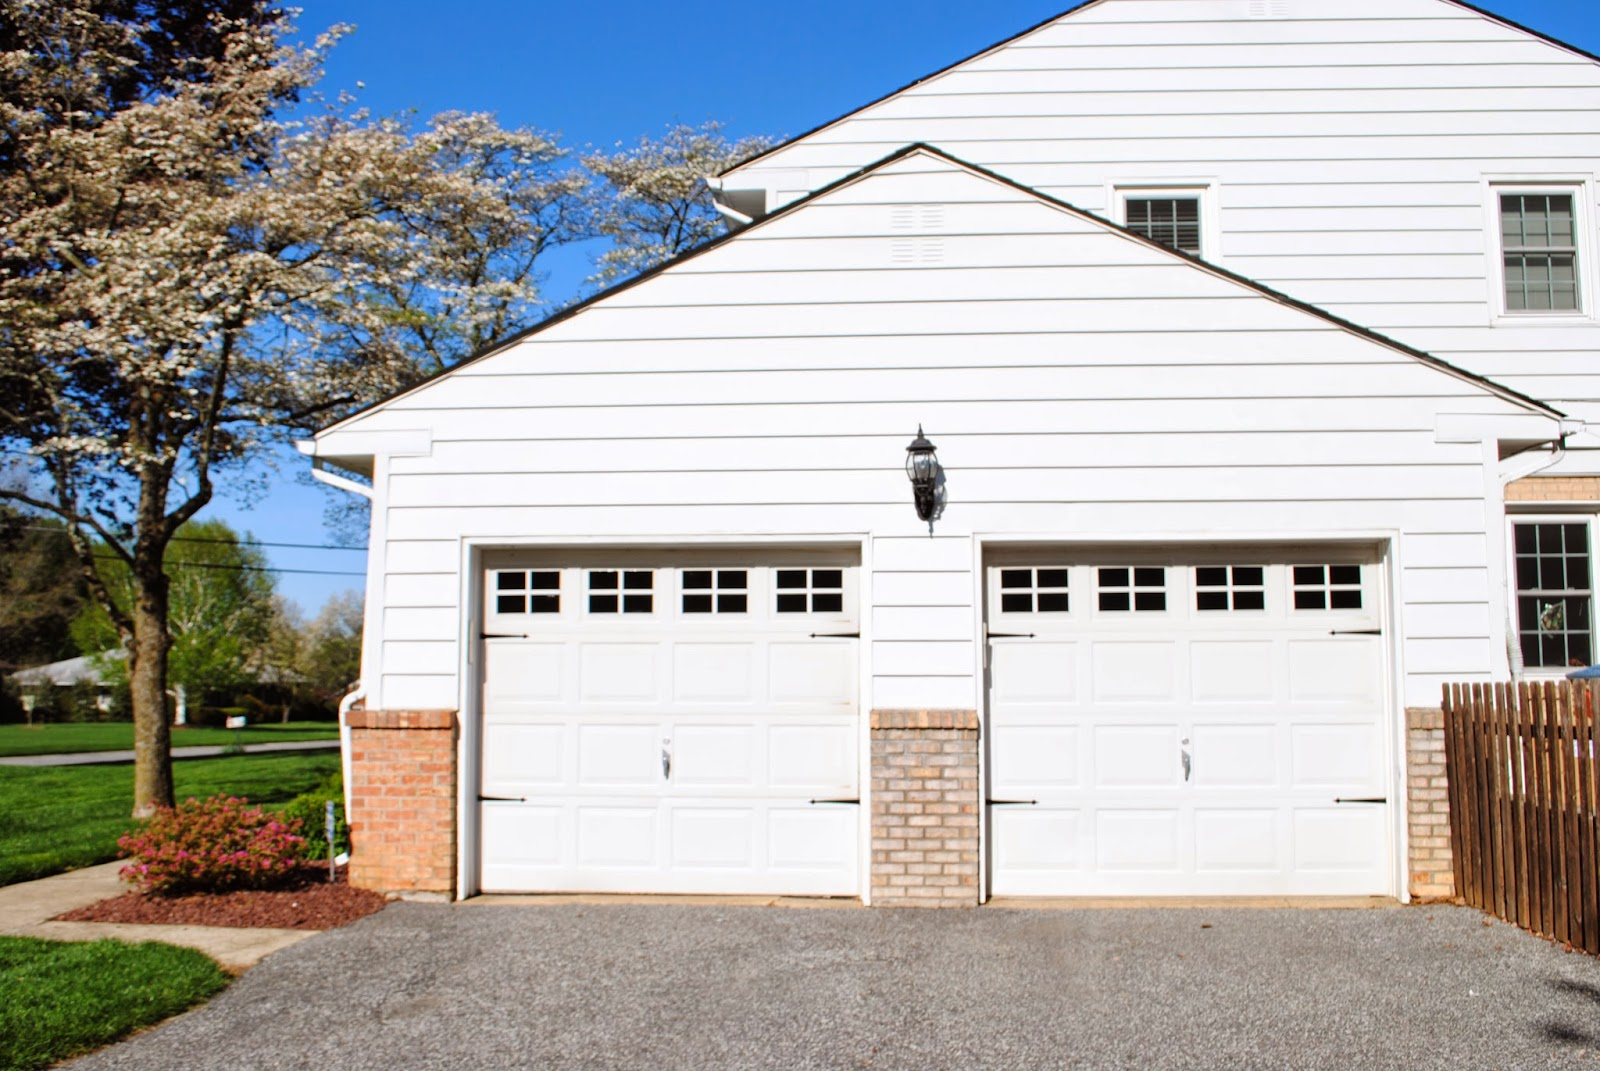 Carriage Garage Doors : Diy vinyl faux carriage garage doors free studio file